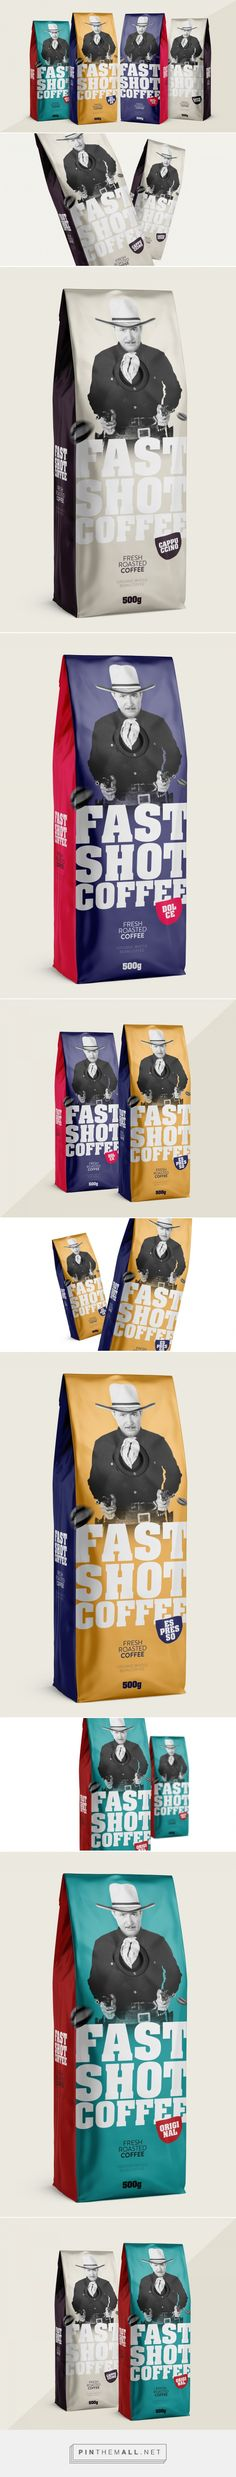 Want a fast shot? Fast Shot Coffee packaging design by ChiapaDesign - http://www.packagingoftheworld.com/2016/12/fast-shot-coffee.html